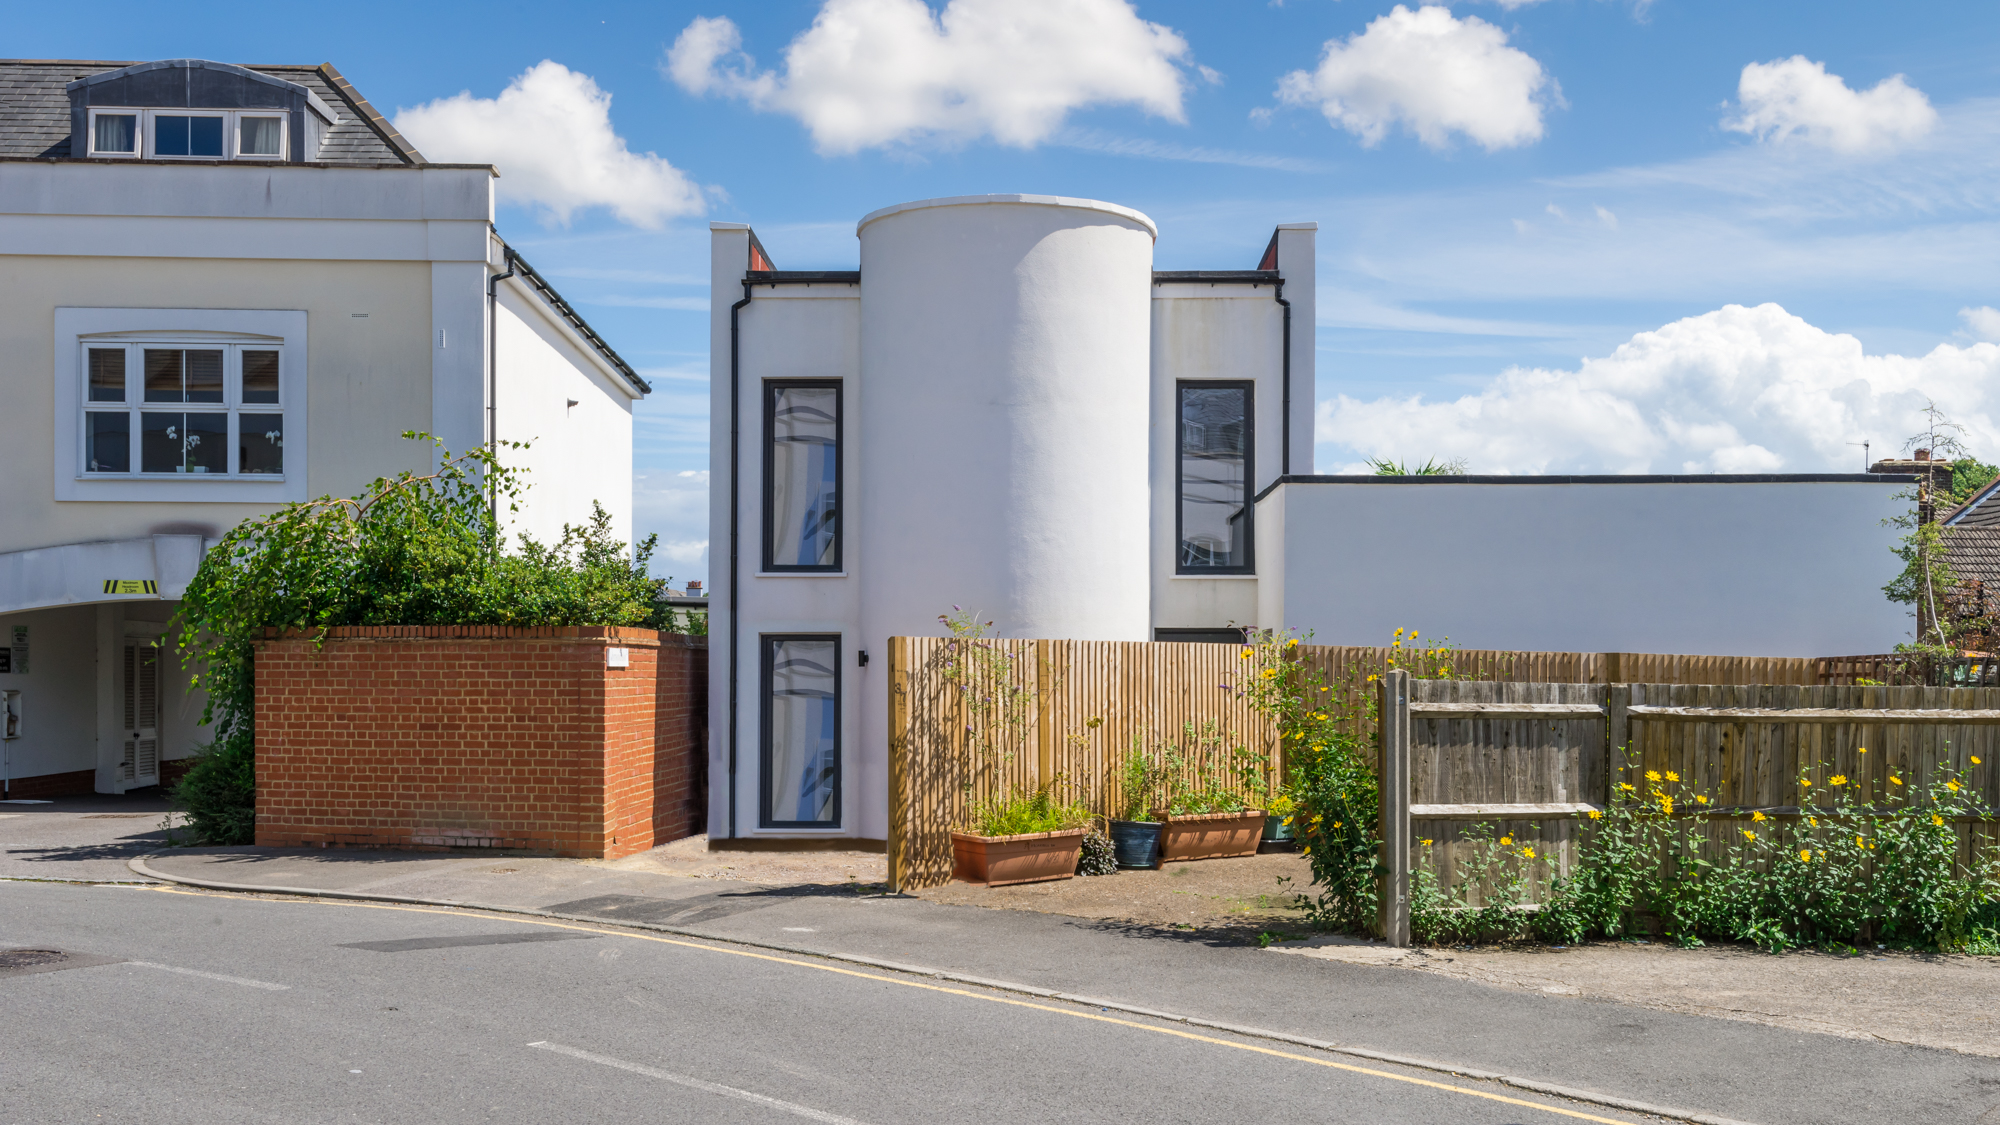 The First Passivhaus in Reigate